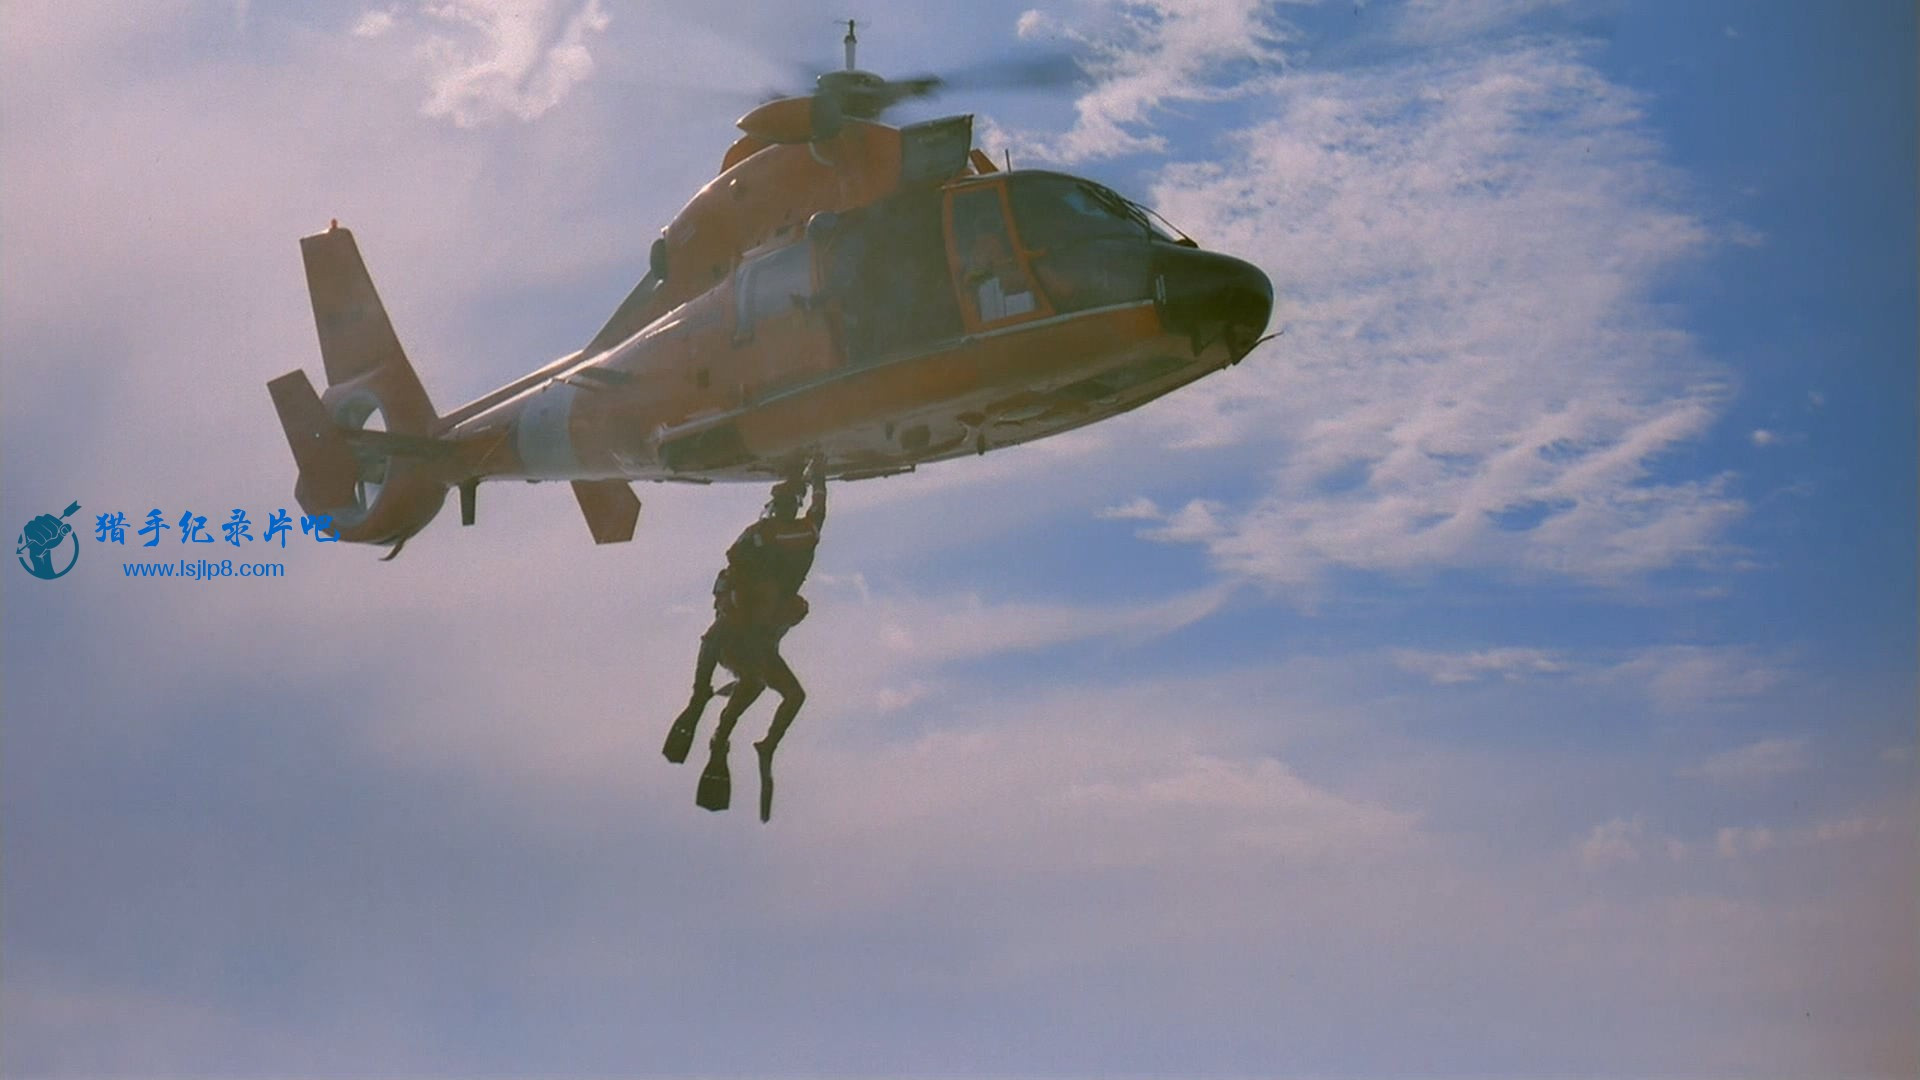 IMAX.Straight.Up.Helicopters.in.Action.2002.1080p.BluRay.x264-DON.mkv_20200803_1.jpg